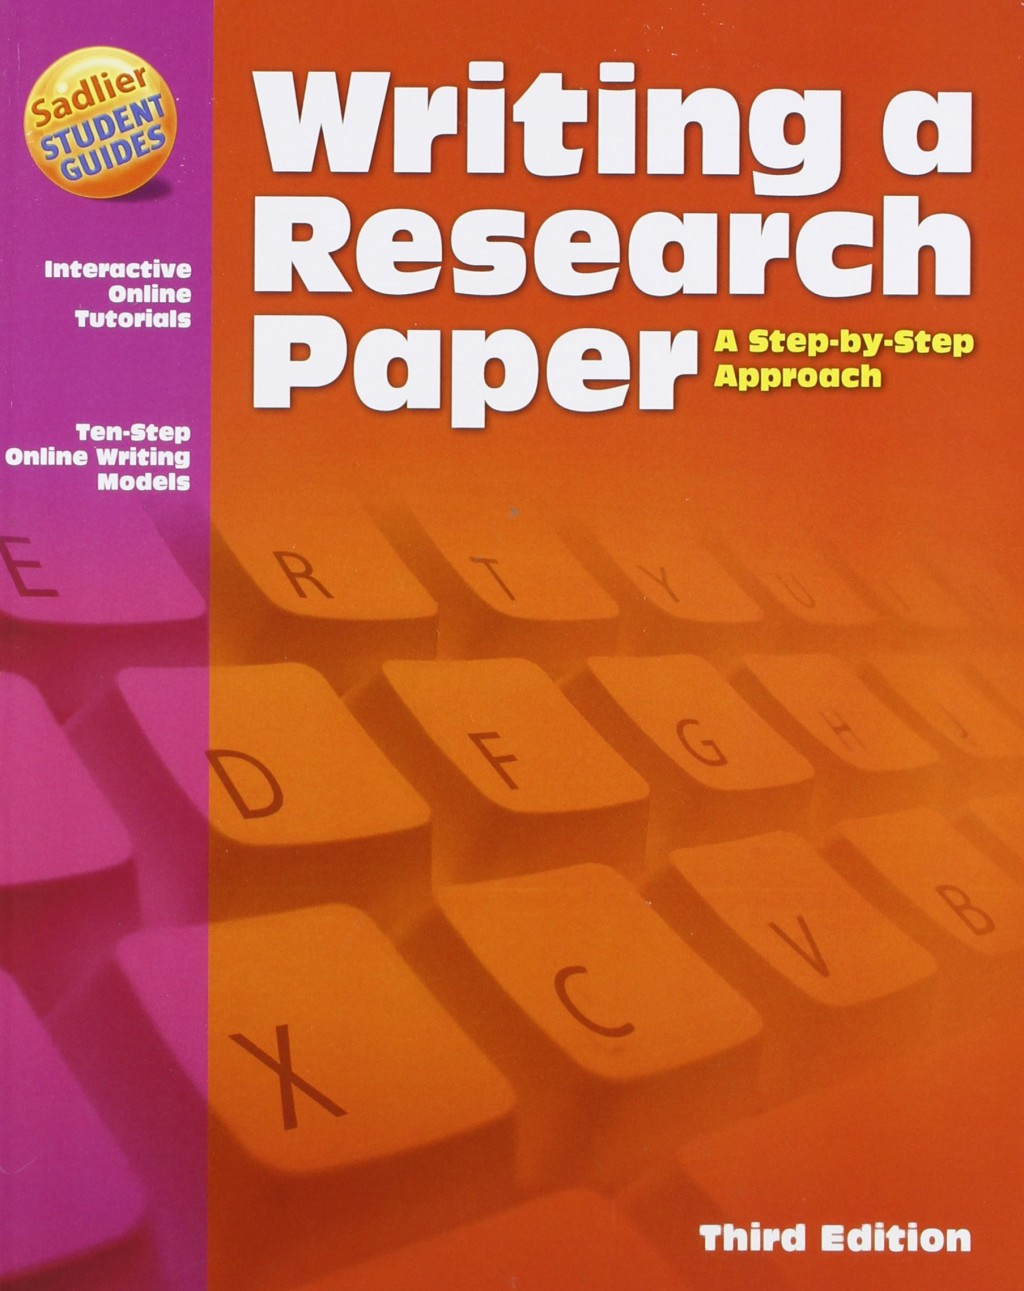 028 81uqfpthpml Research Paper Writing Fascinating Of Great Pdf Harvard Style Sample Large